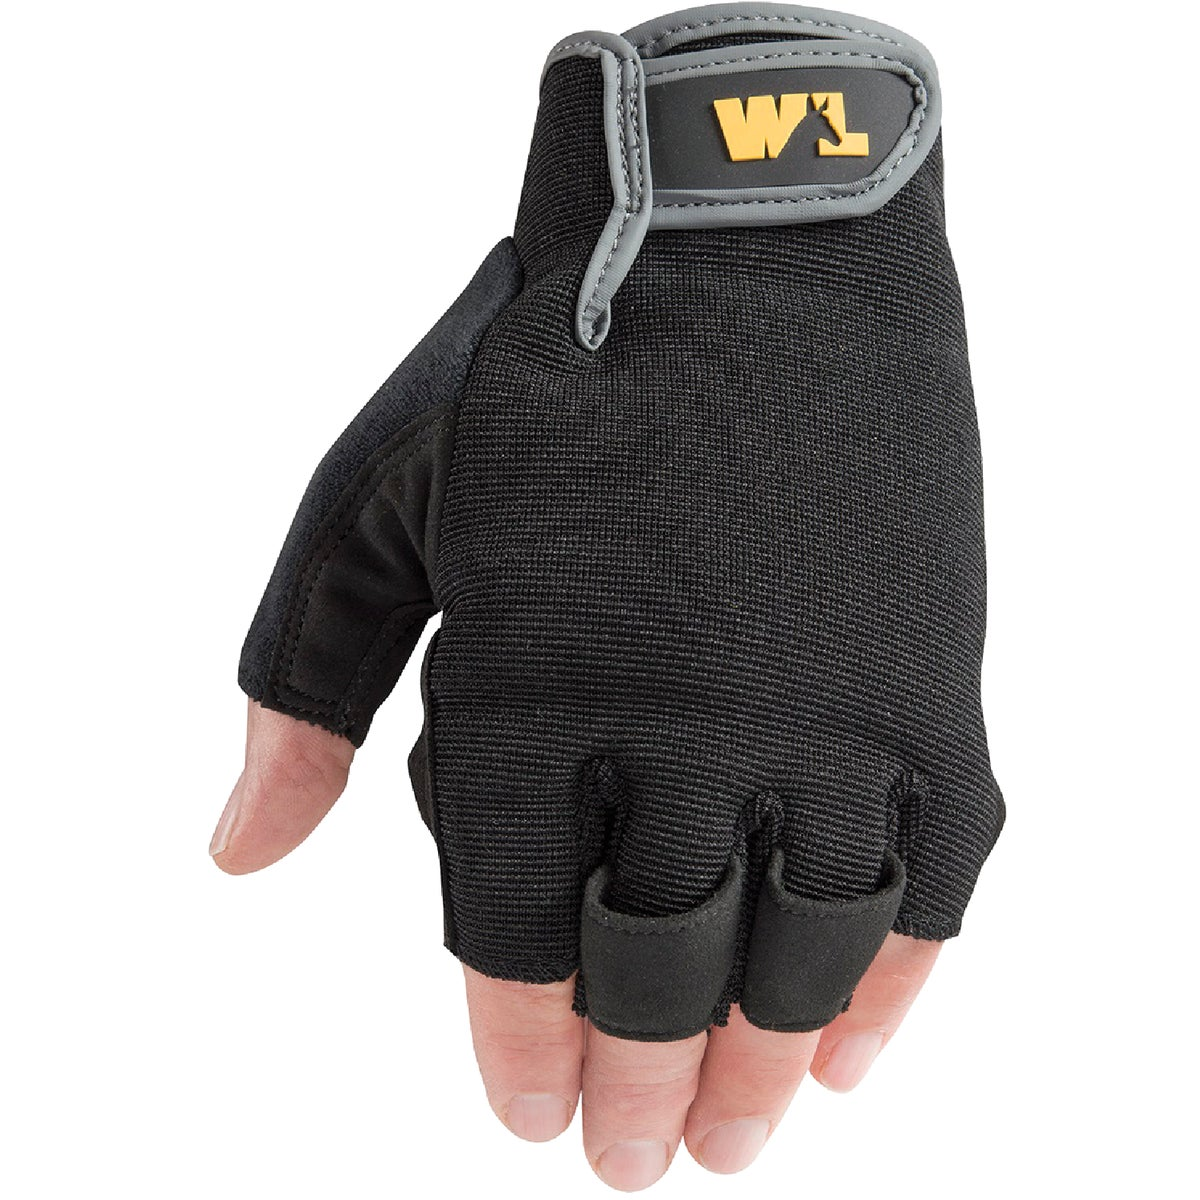 LRG FINGERLESS GLOVE